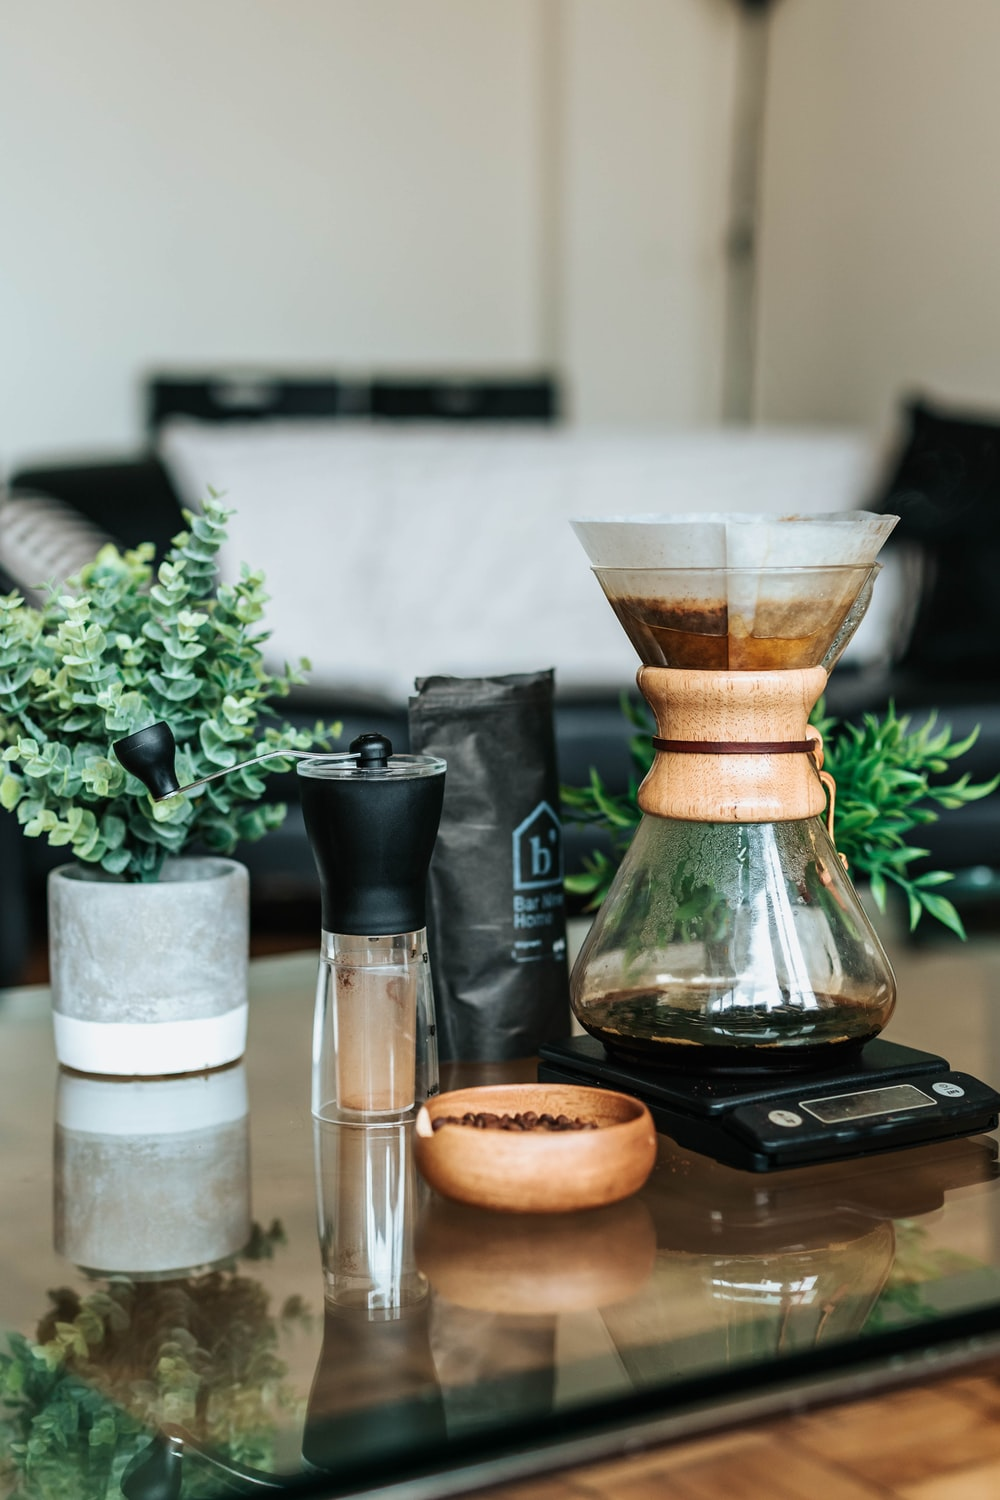 clear pour-over coffee brewer with digital scale